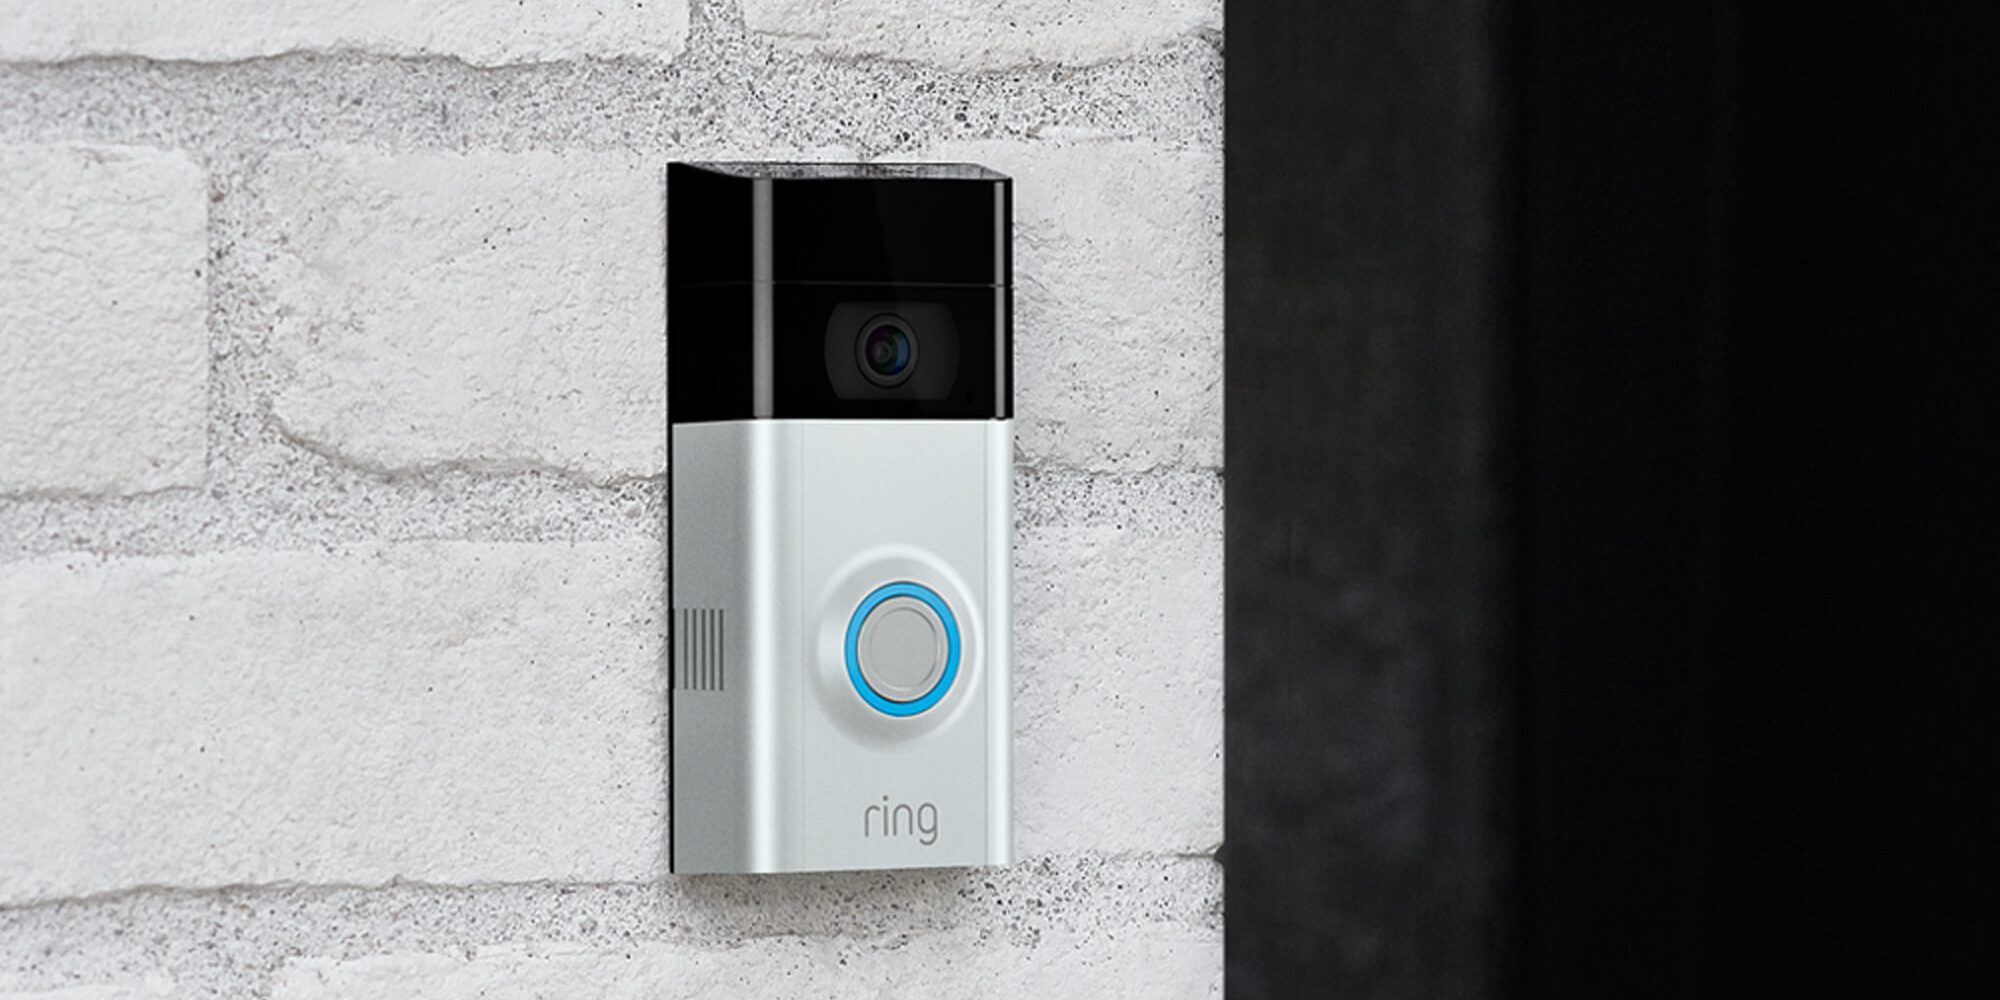 Nest competitor Ring reportedly gave employees full access to customer's live camera feeds